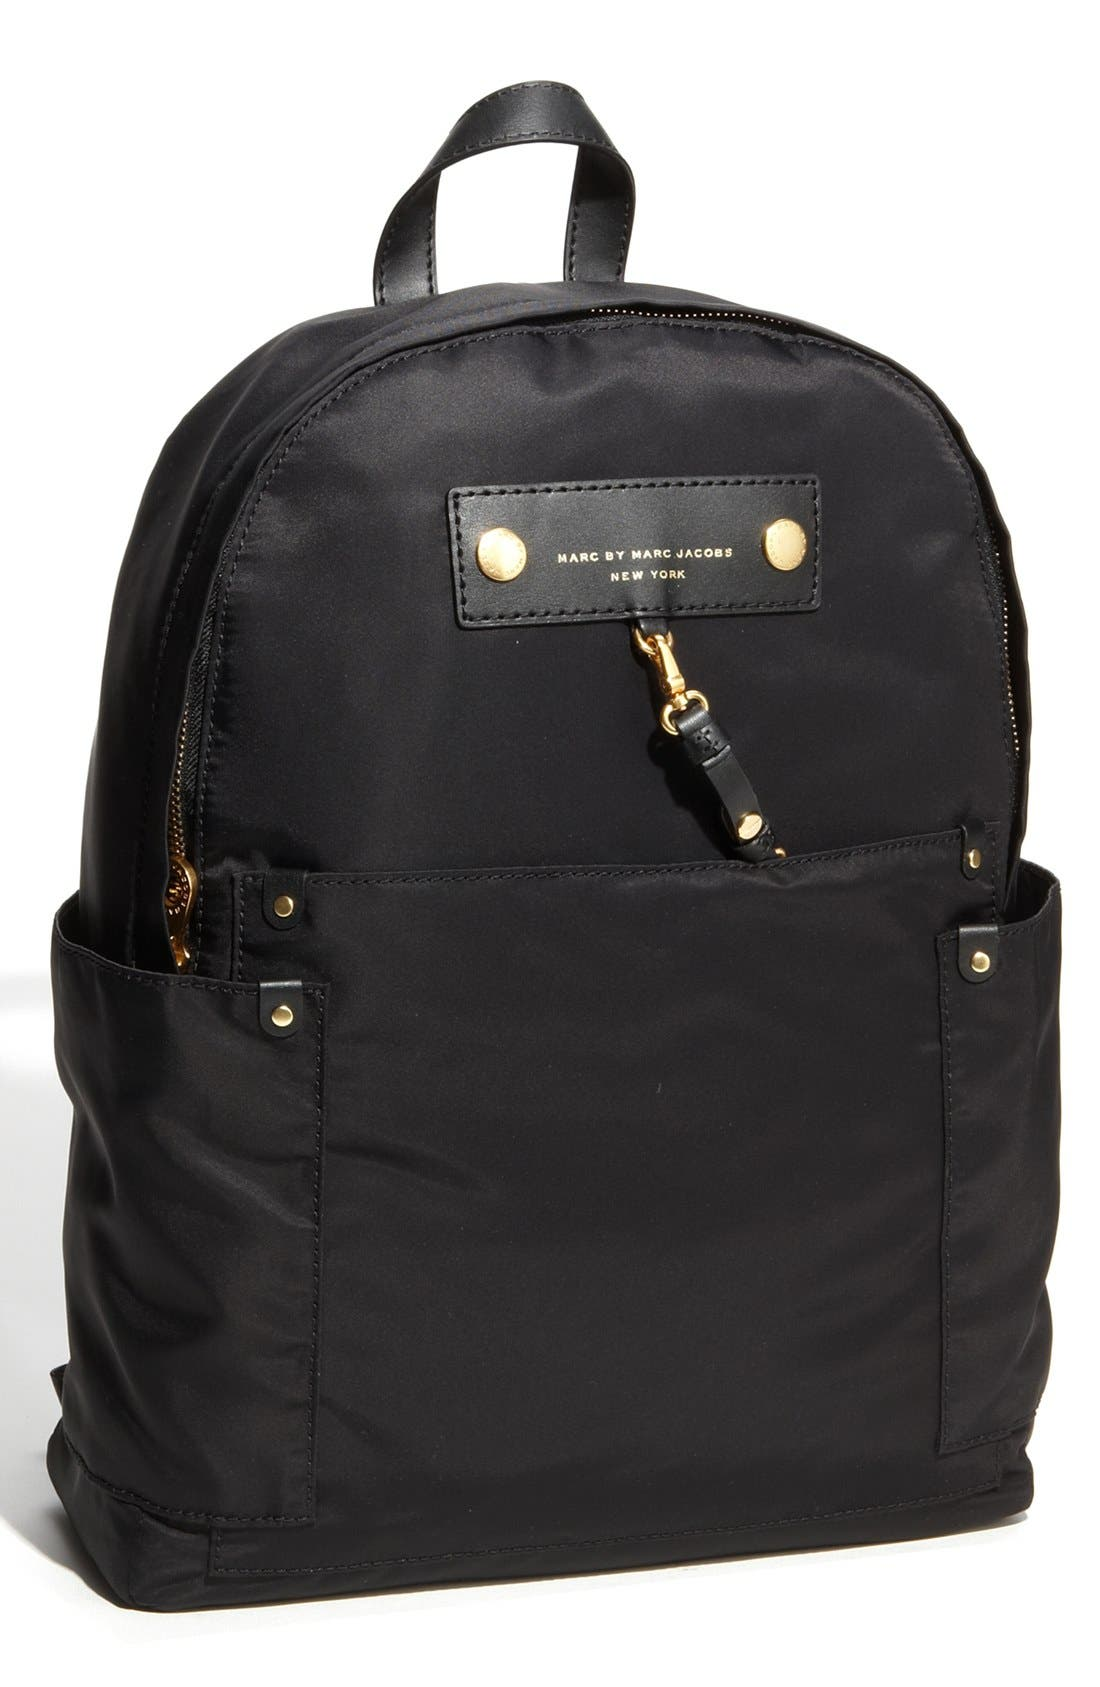 MARC JACOBS,                             MARC BY MARC JACOBS 'Preppy Nylon' Backpack,                             Main thumbnail 1, color,                             002